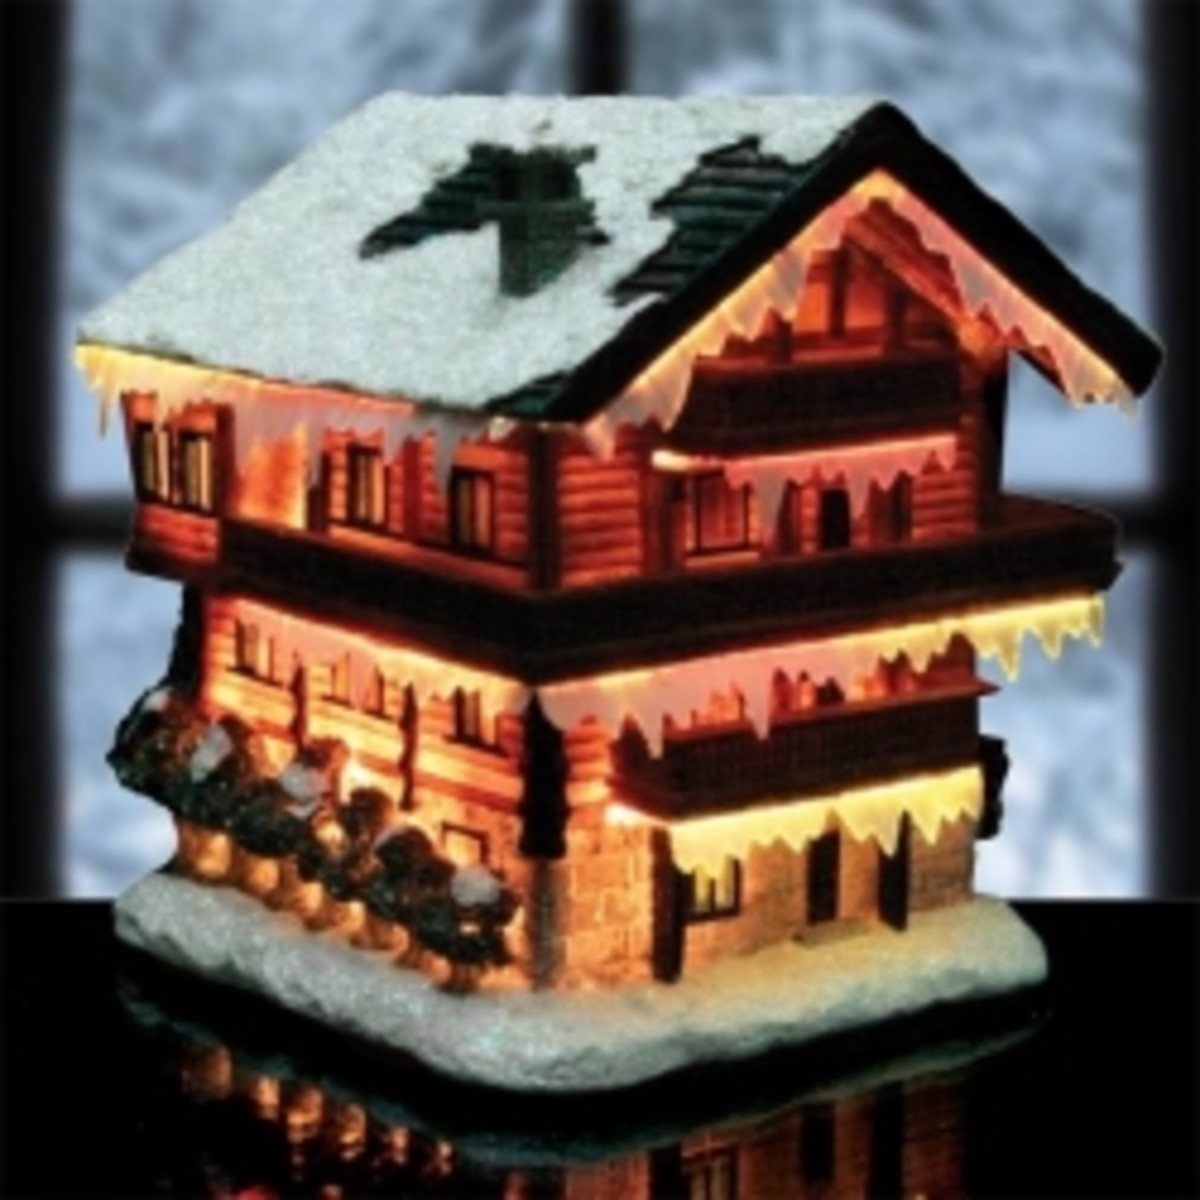 Fiber optic christmas decorations hubpages for Fiber optic halloween decorations home